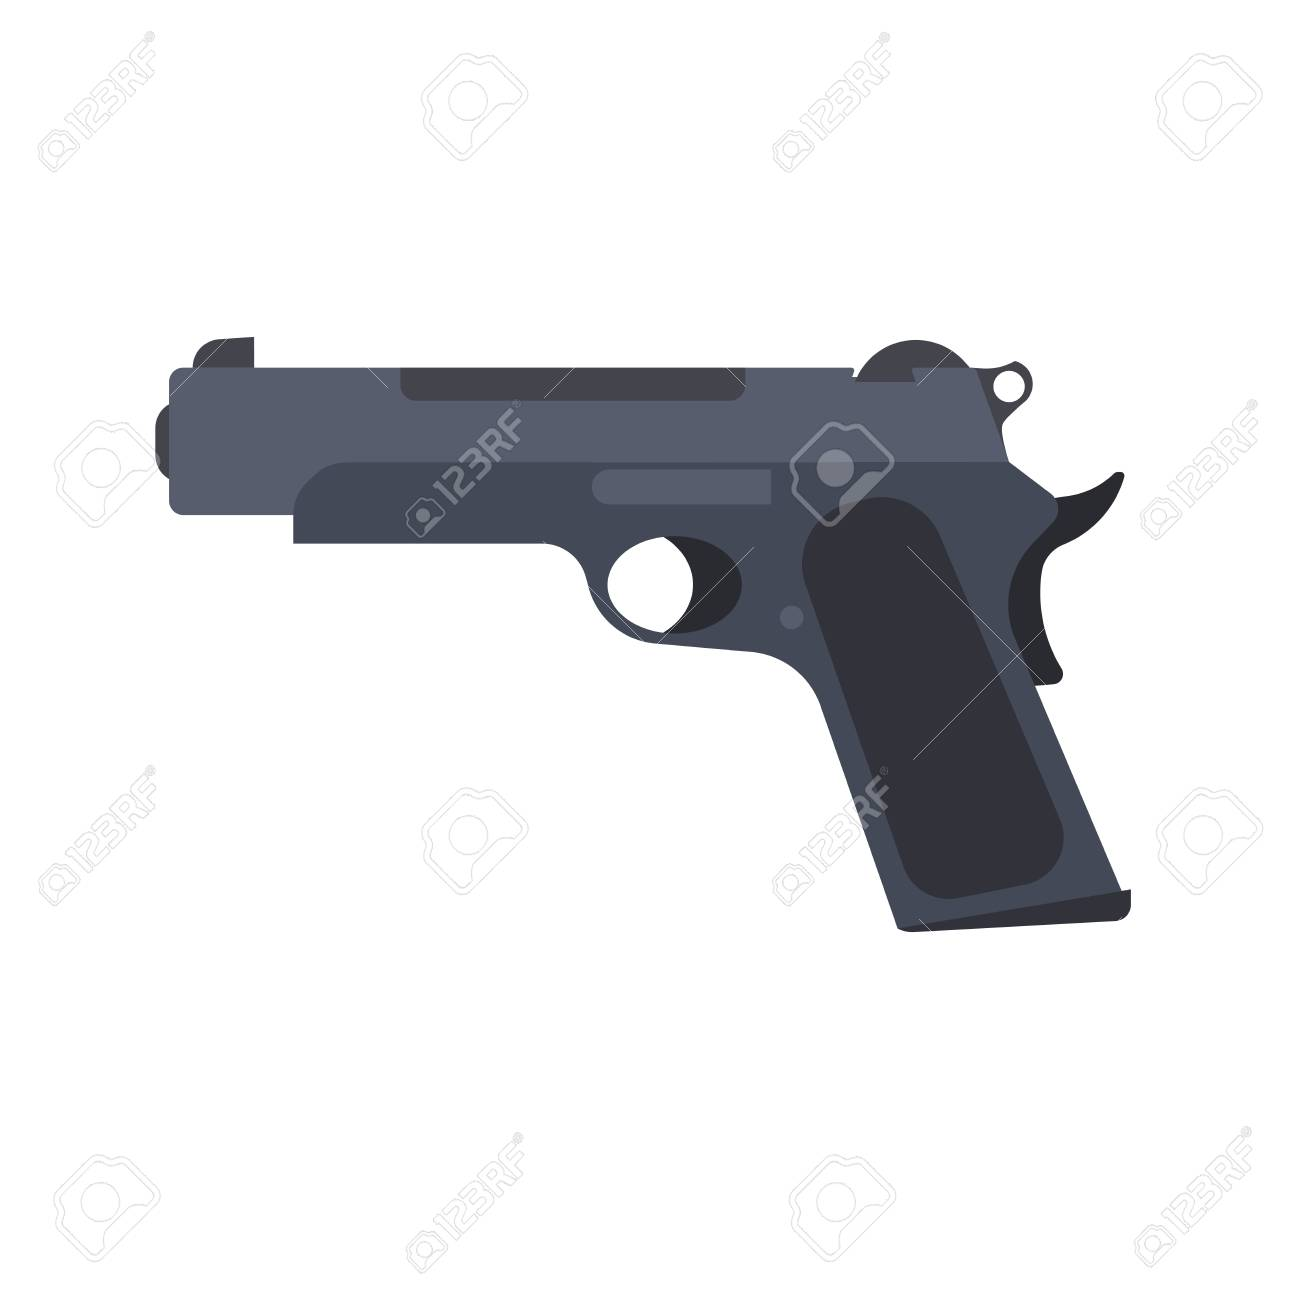 pistol gun vector revolver isolated handgun illustration weapon royalty free cliparts vectors and stock illustration image 92805400 pistol gun vector revolver isolated handgun illustration weapon